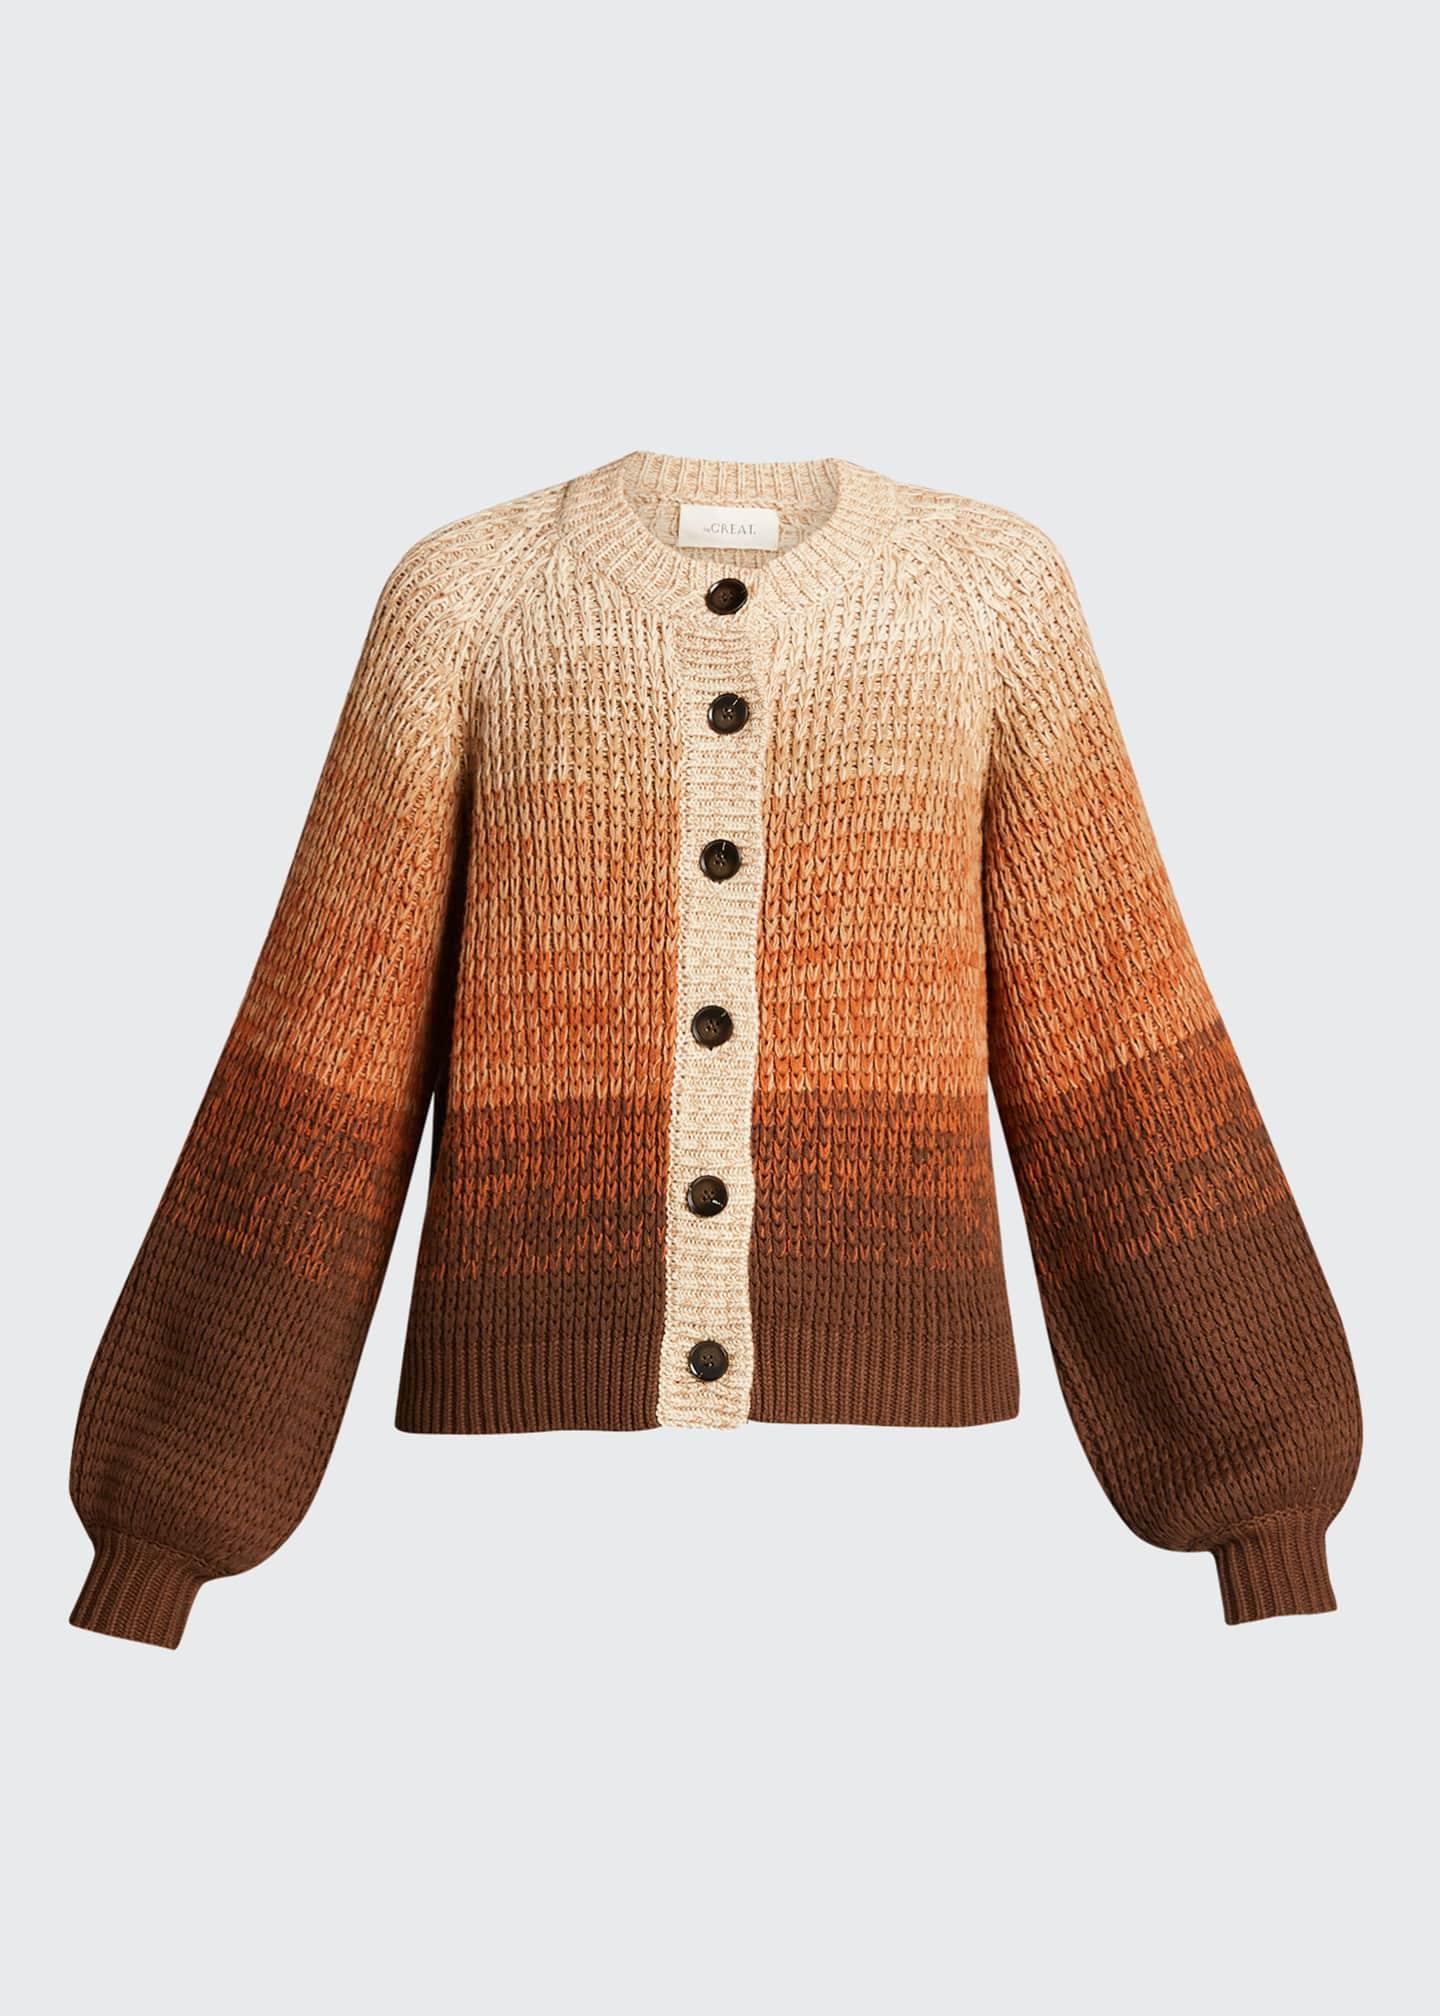 Image 5 of 5: The Dusk Cardigan